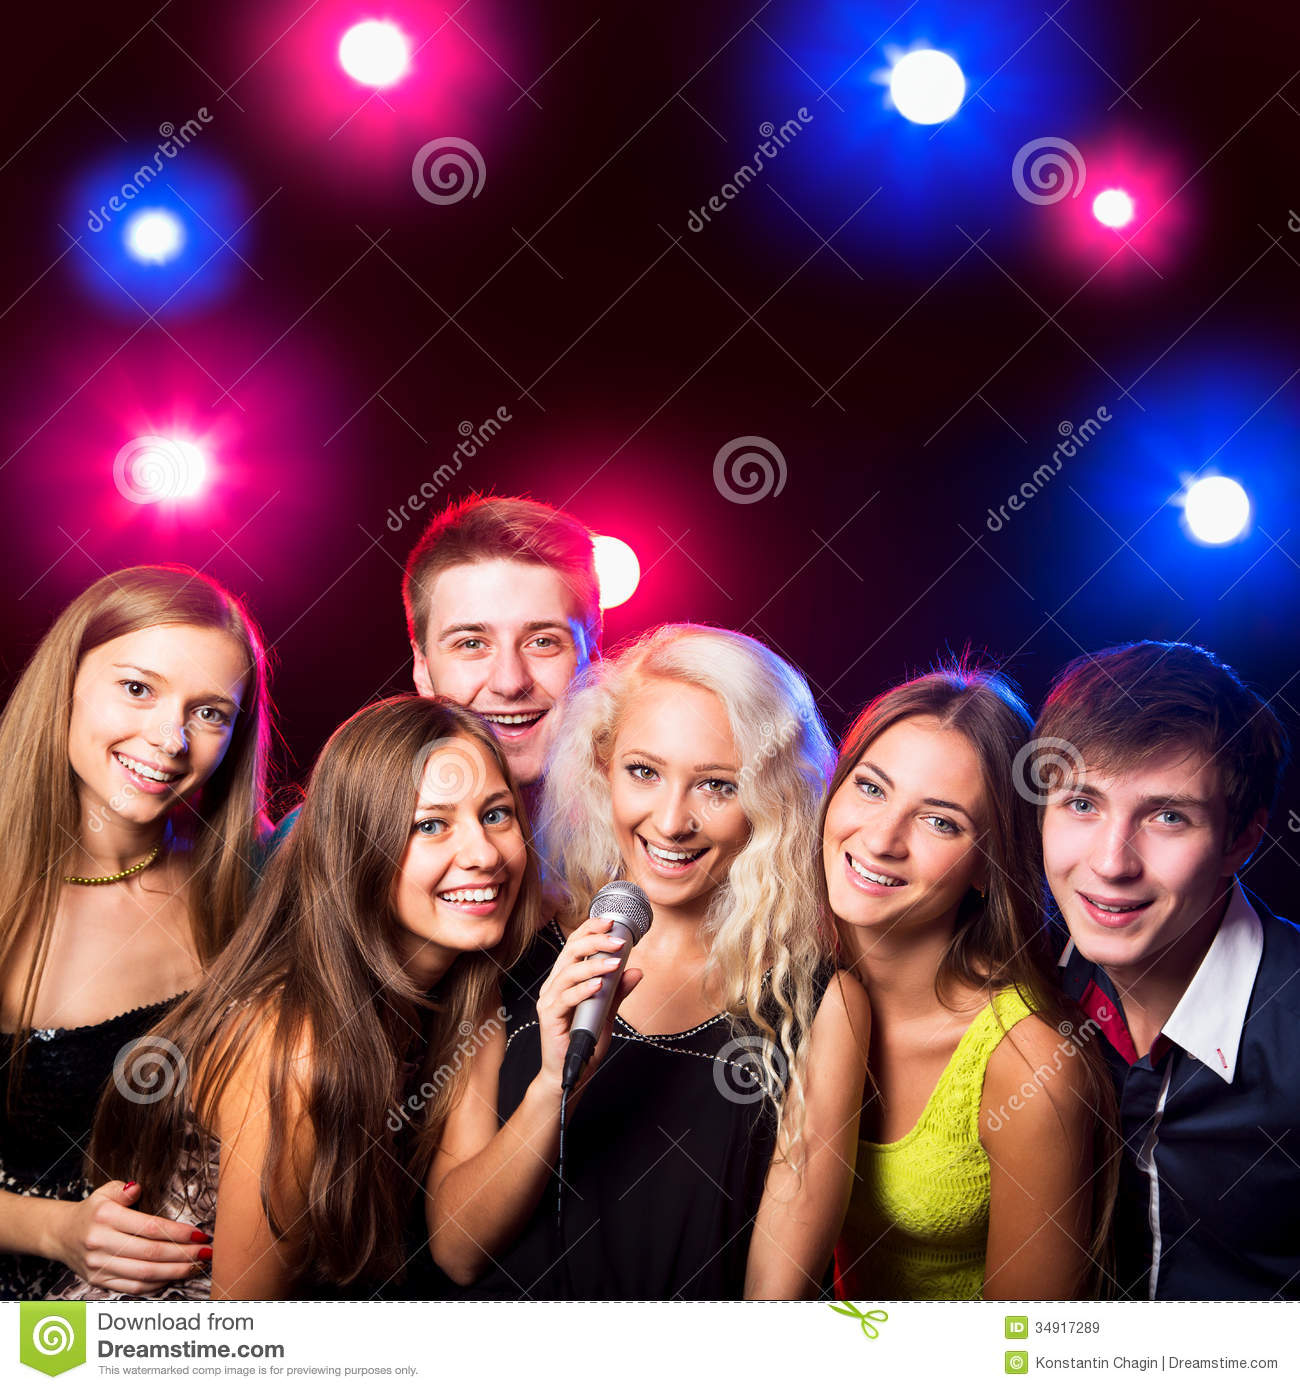 Young People Singing At Party Stock Image - Image: 34917289